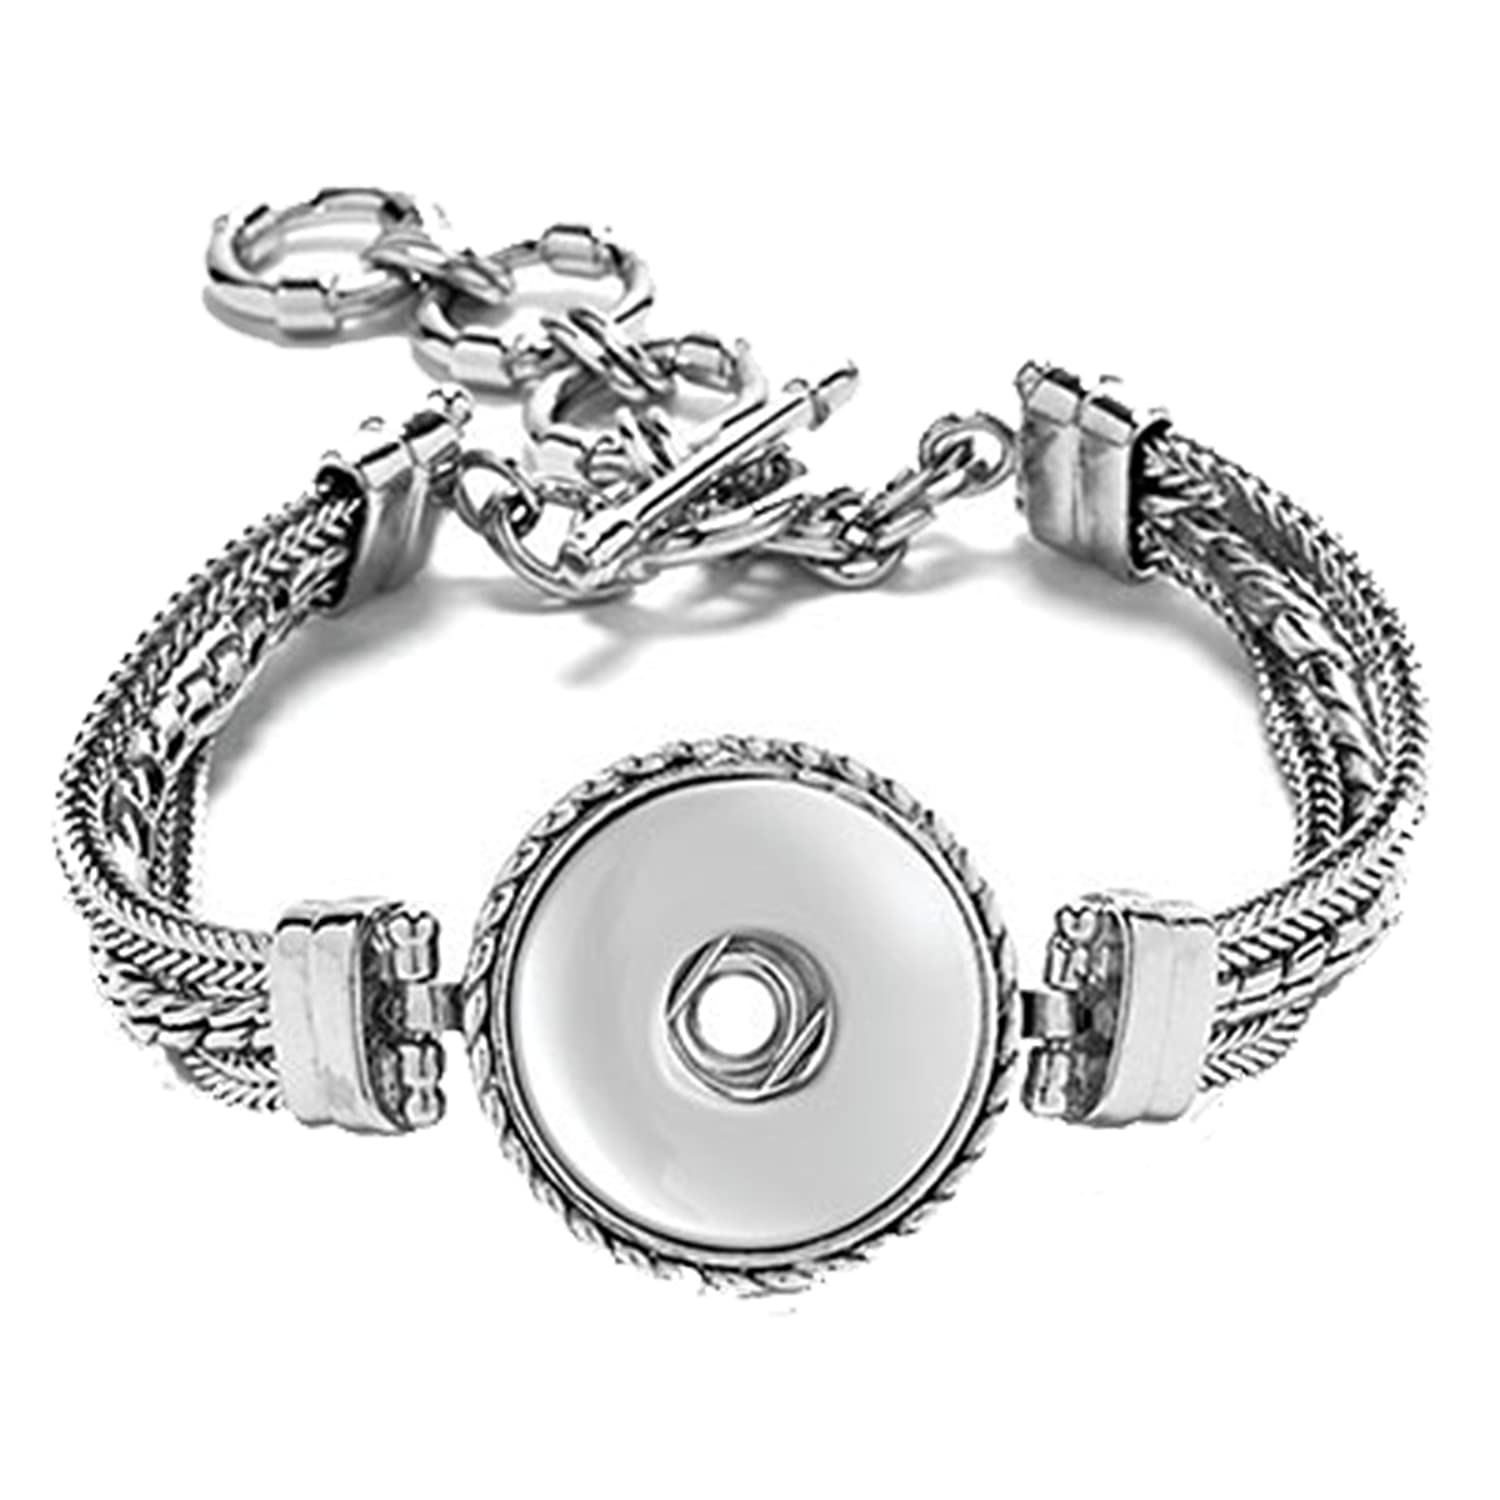 interchangeable with watch floating face use bracelet pin locket component bracelets